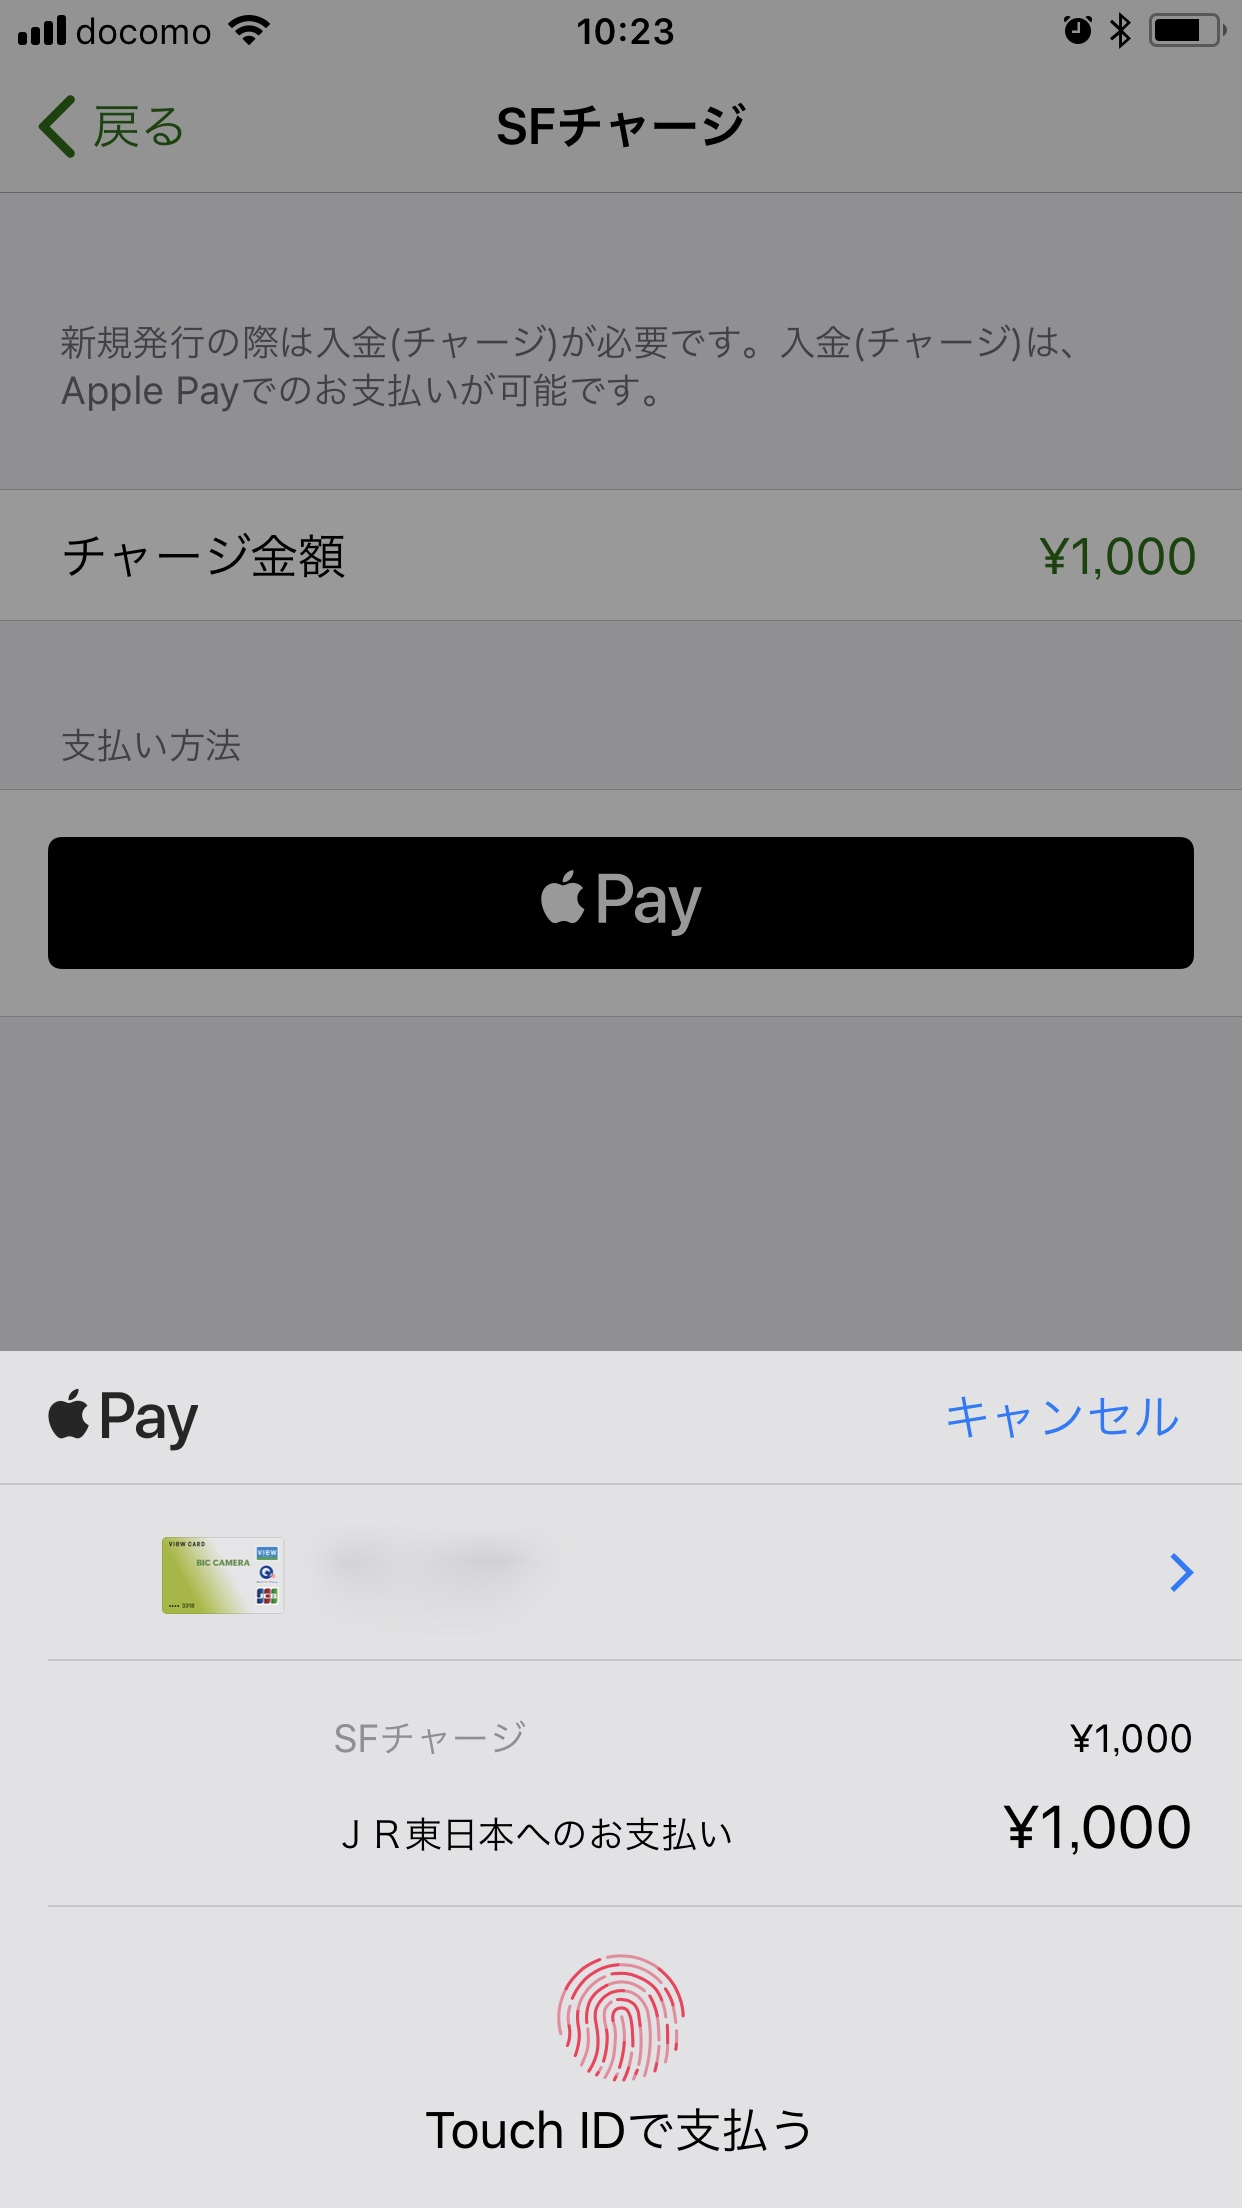 Tap Apple Pay to add an initial balance to Suica